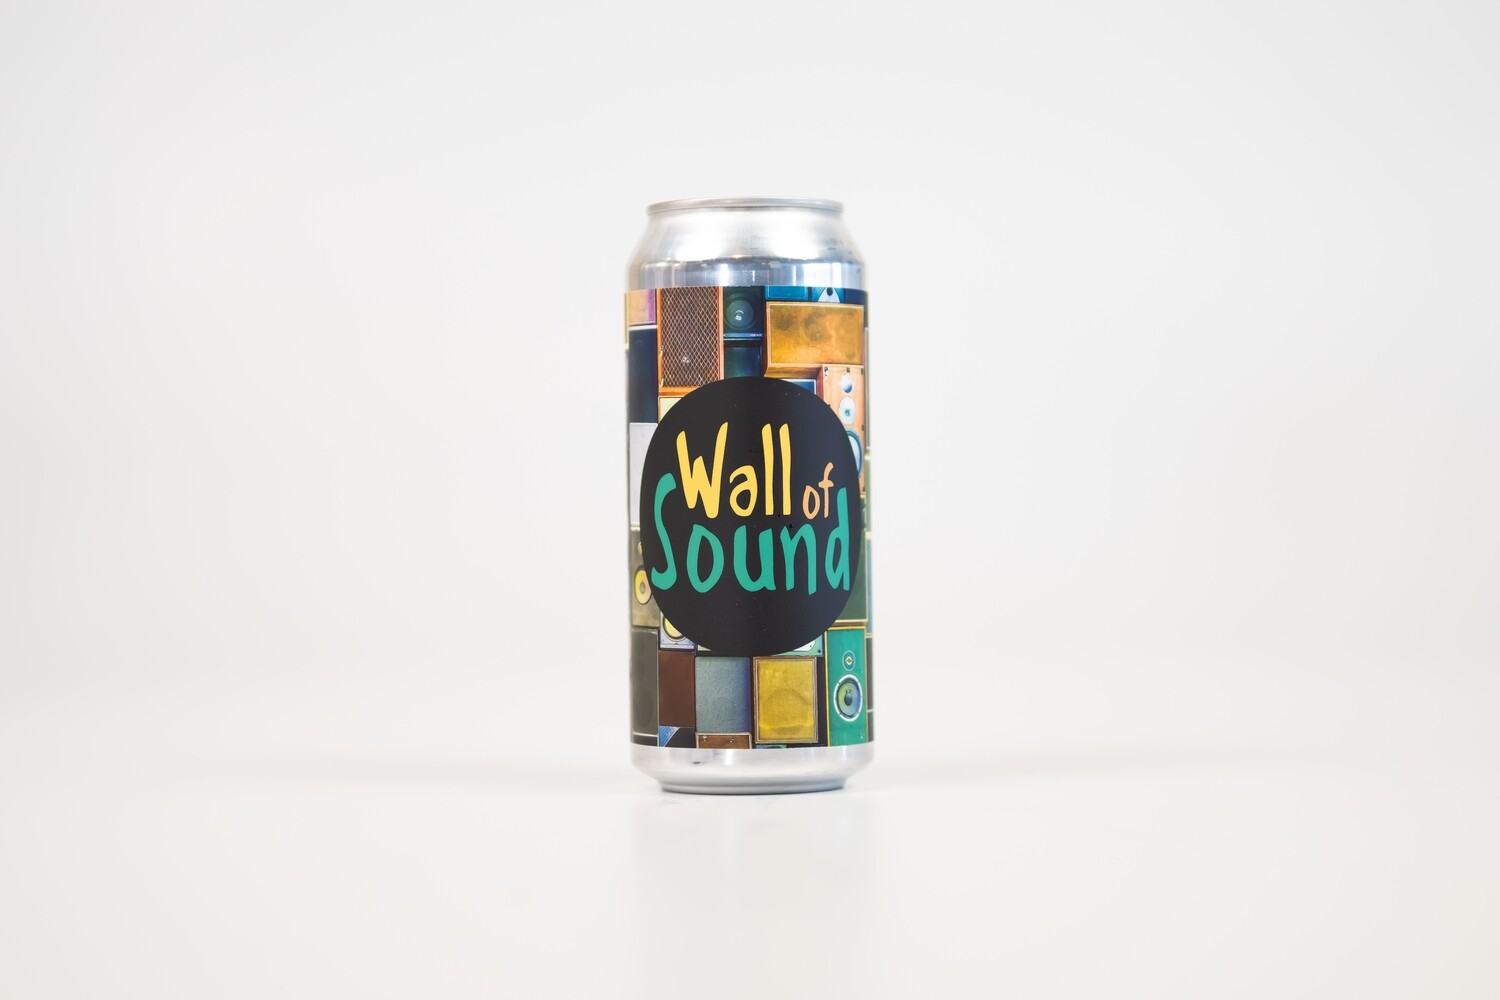 Wall of Sound 16oz Can - 4pk